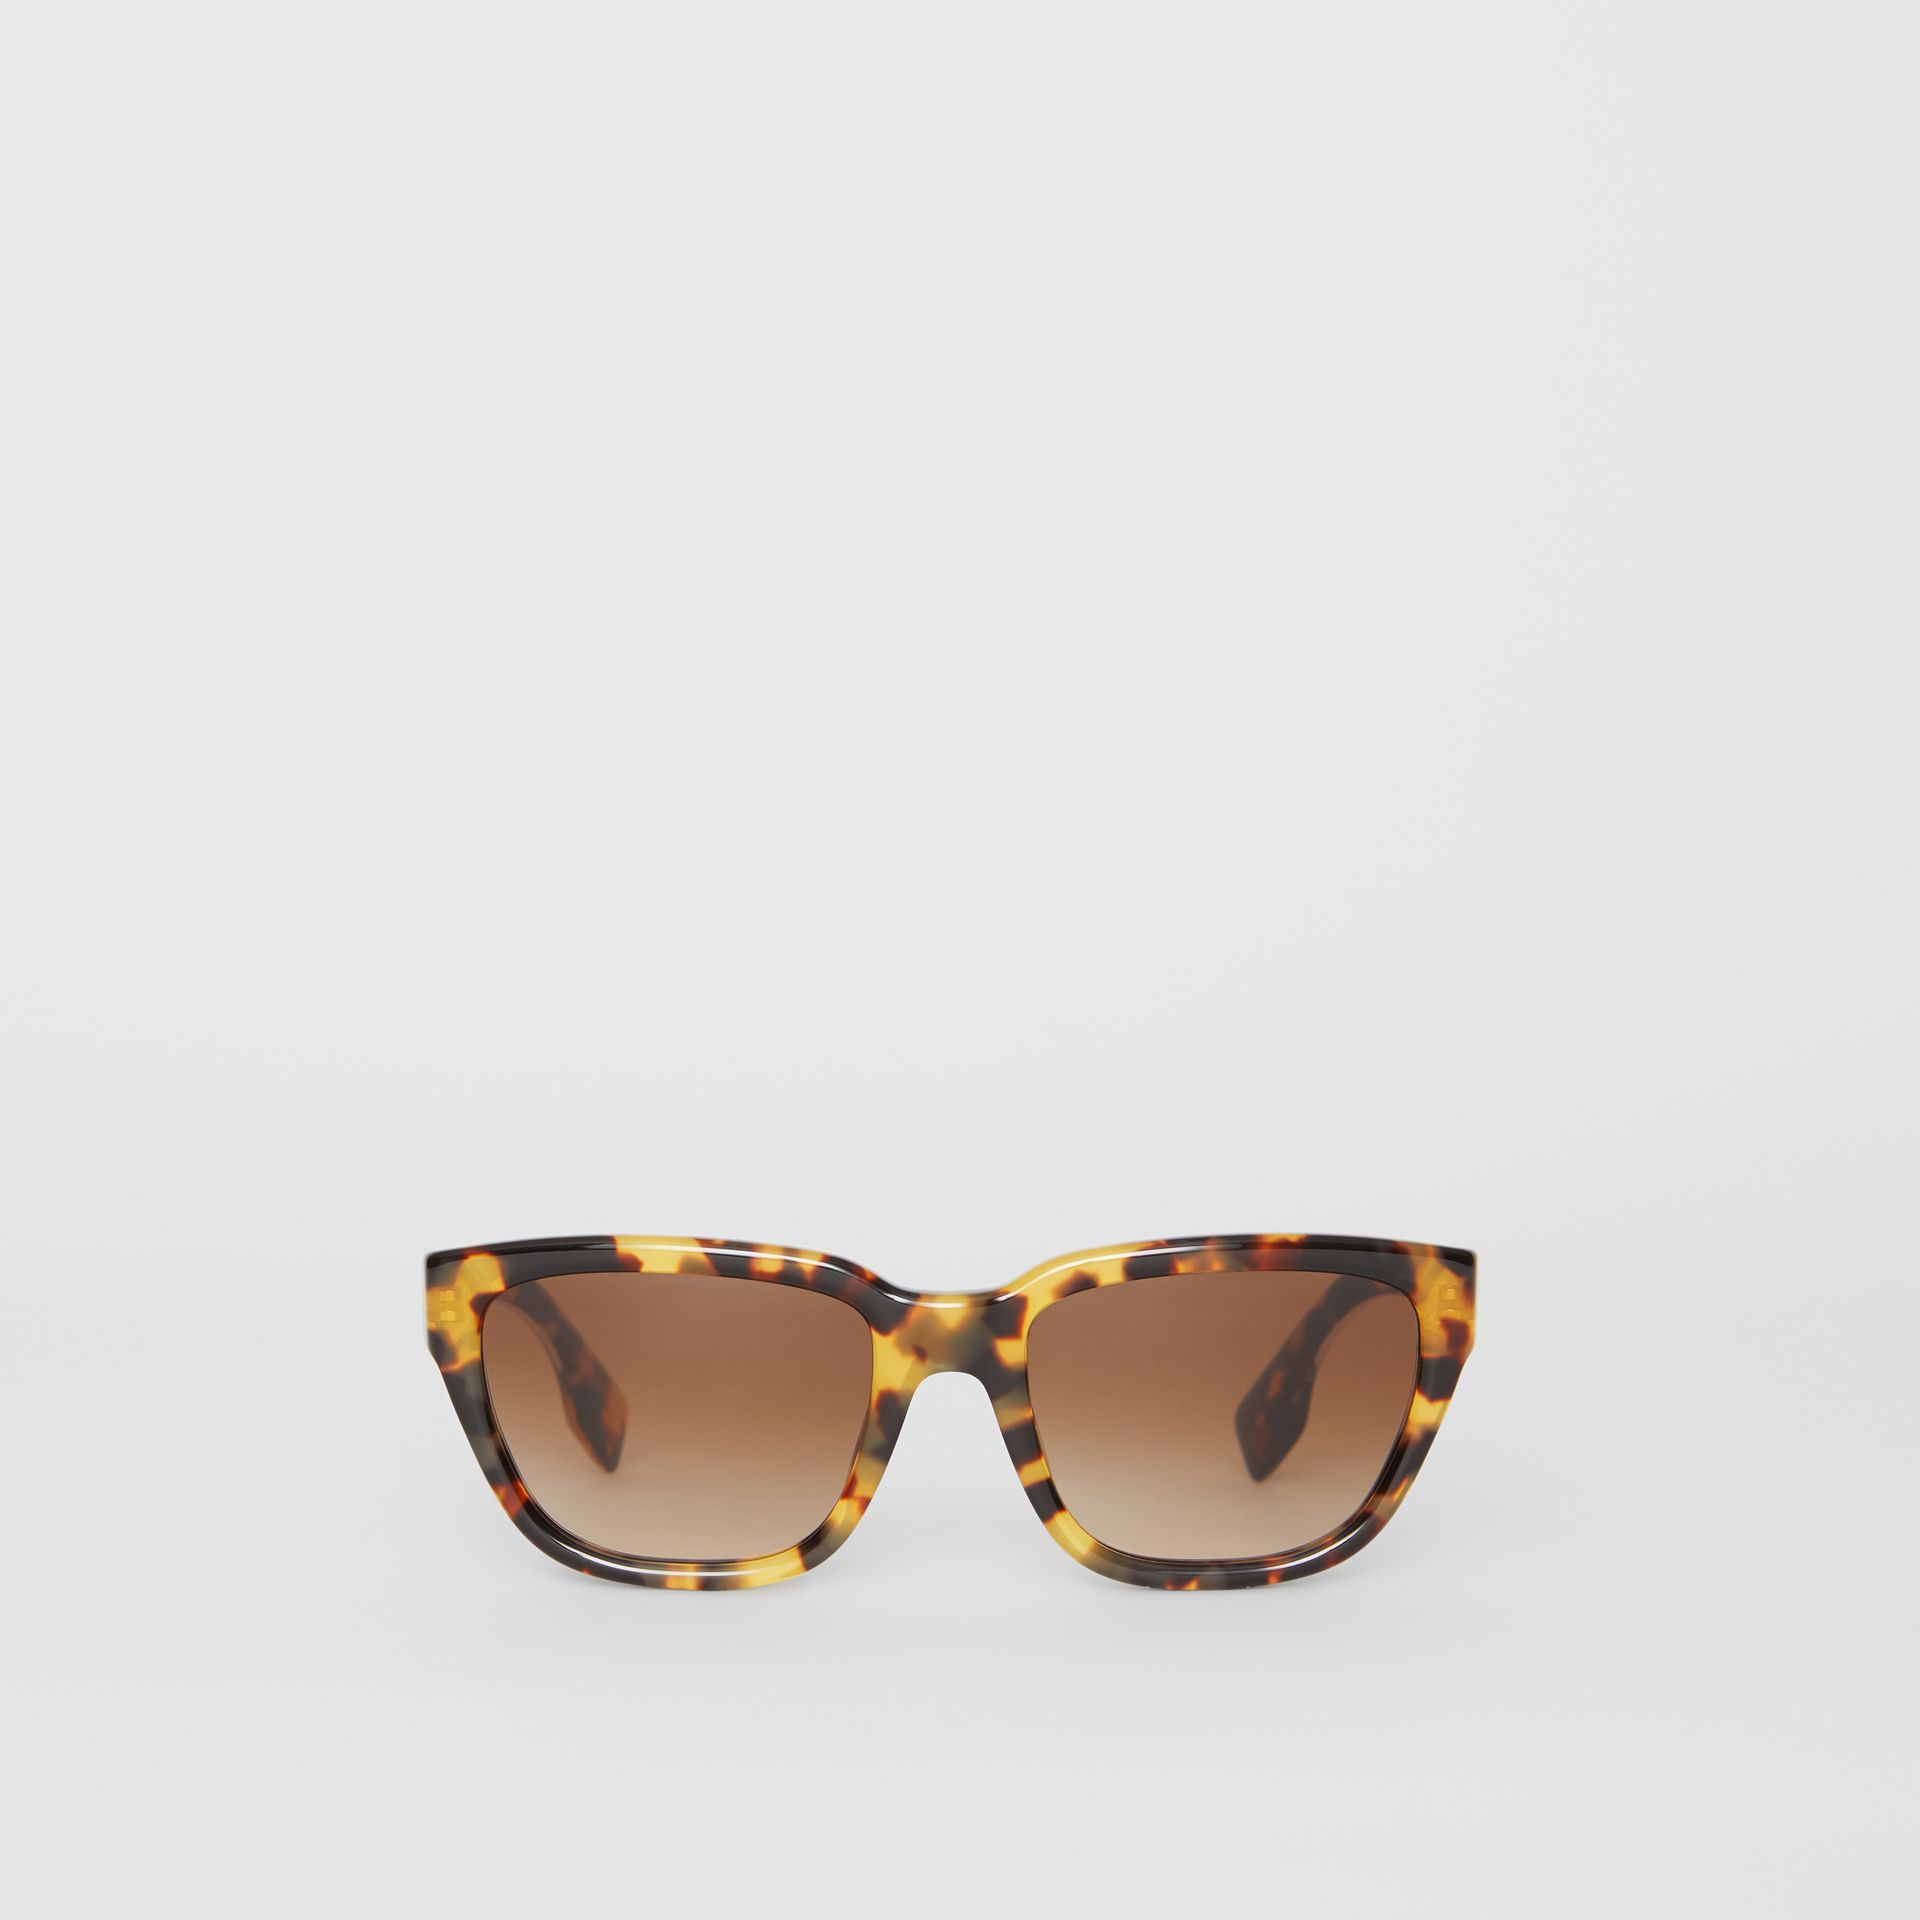 Square Frame Sunglasses in Tortoise Shell - Women | Burberry Singapore - gallery image 0